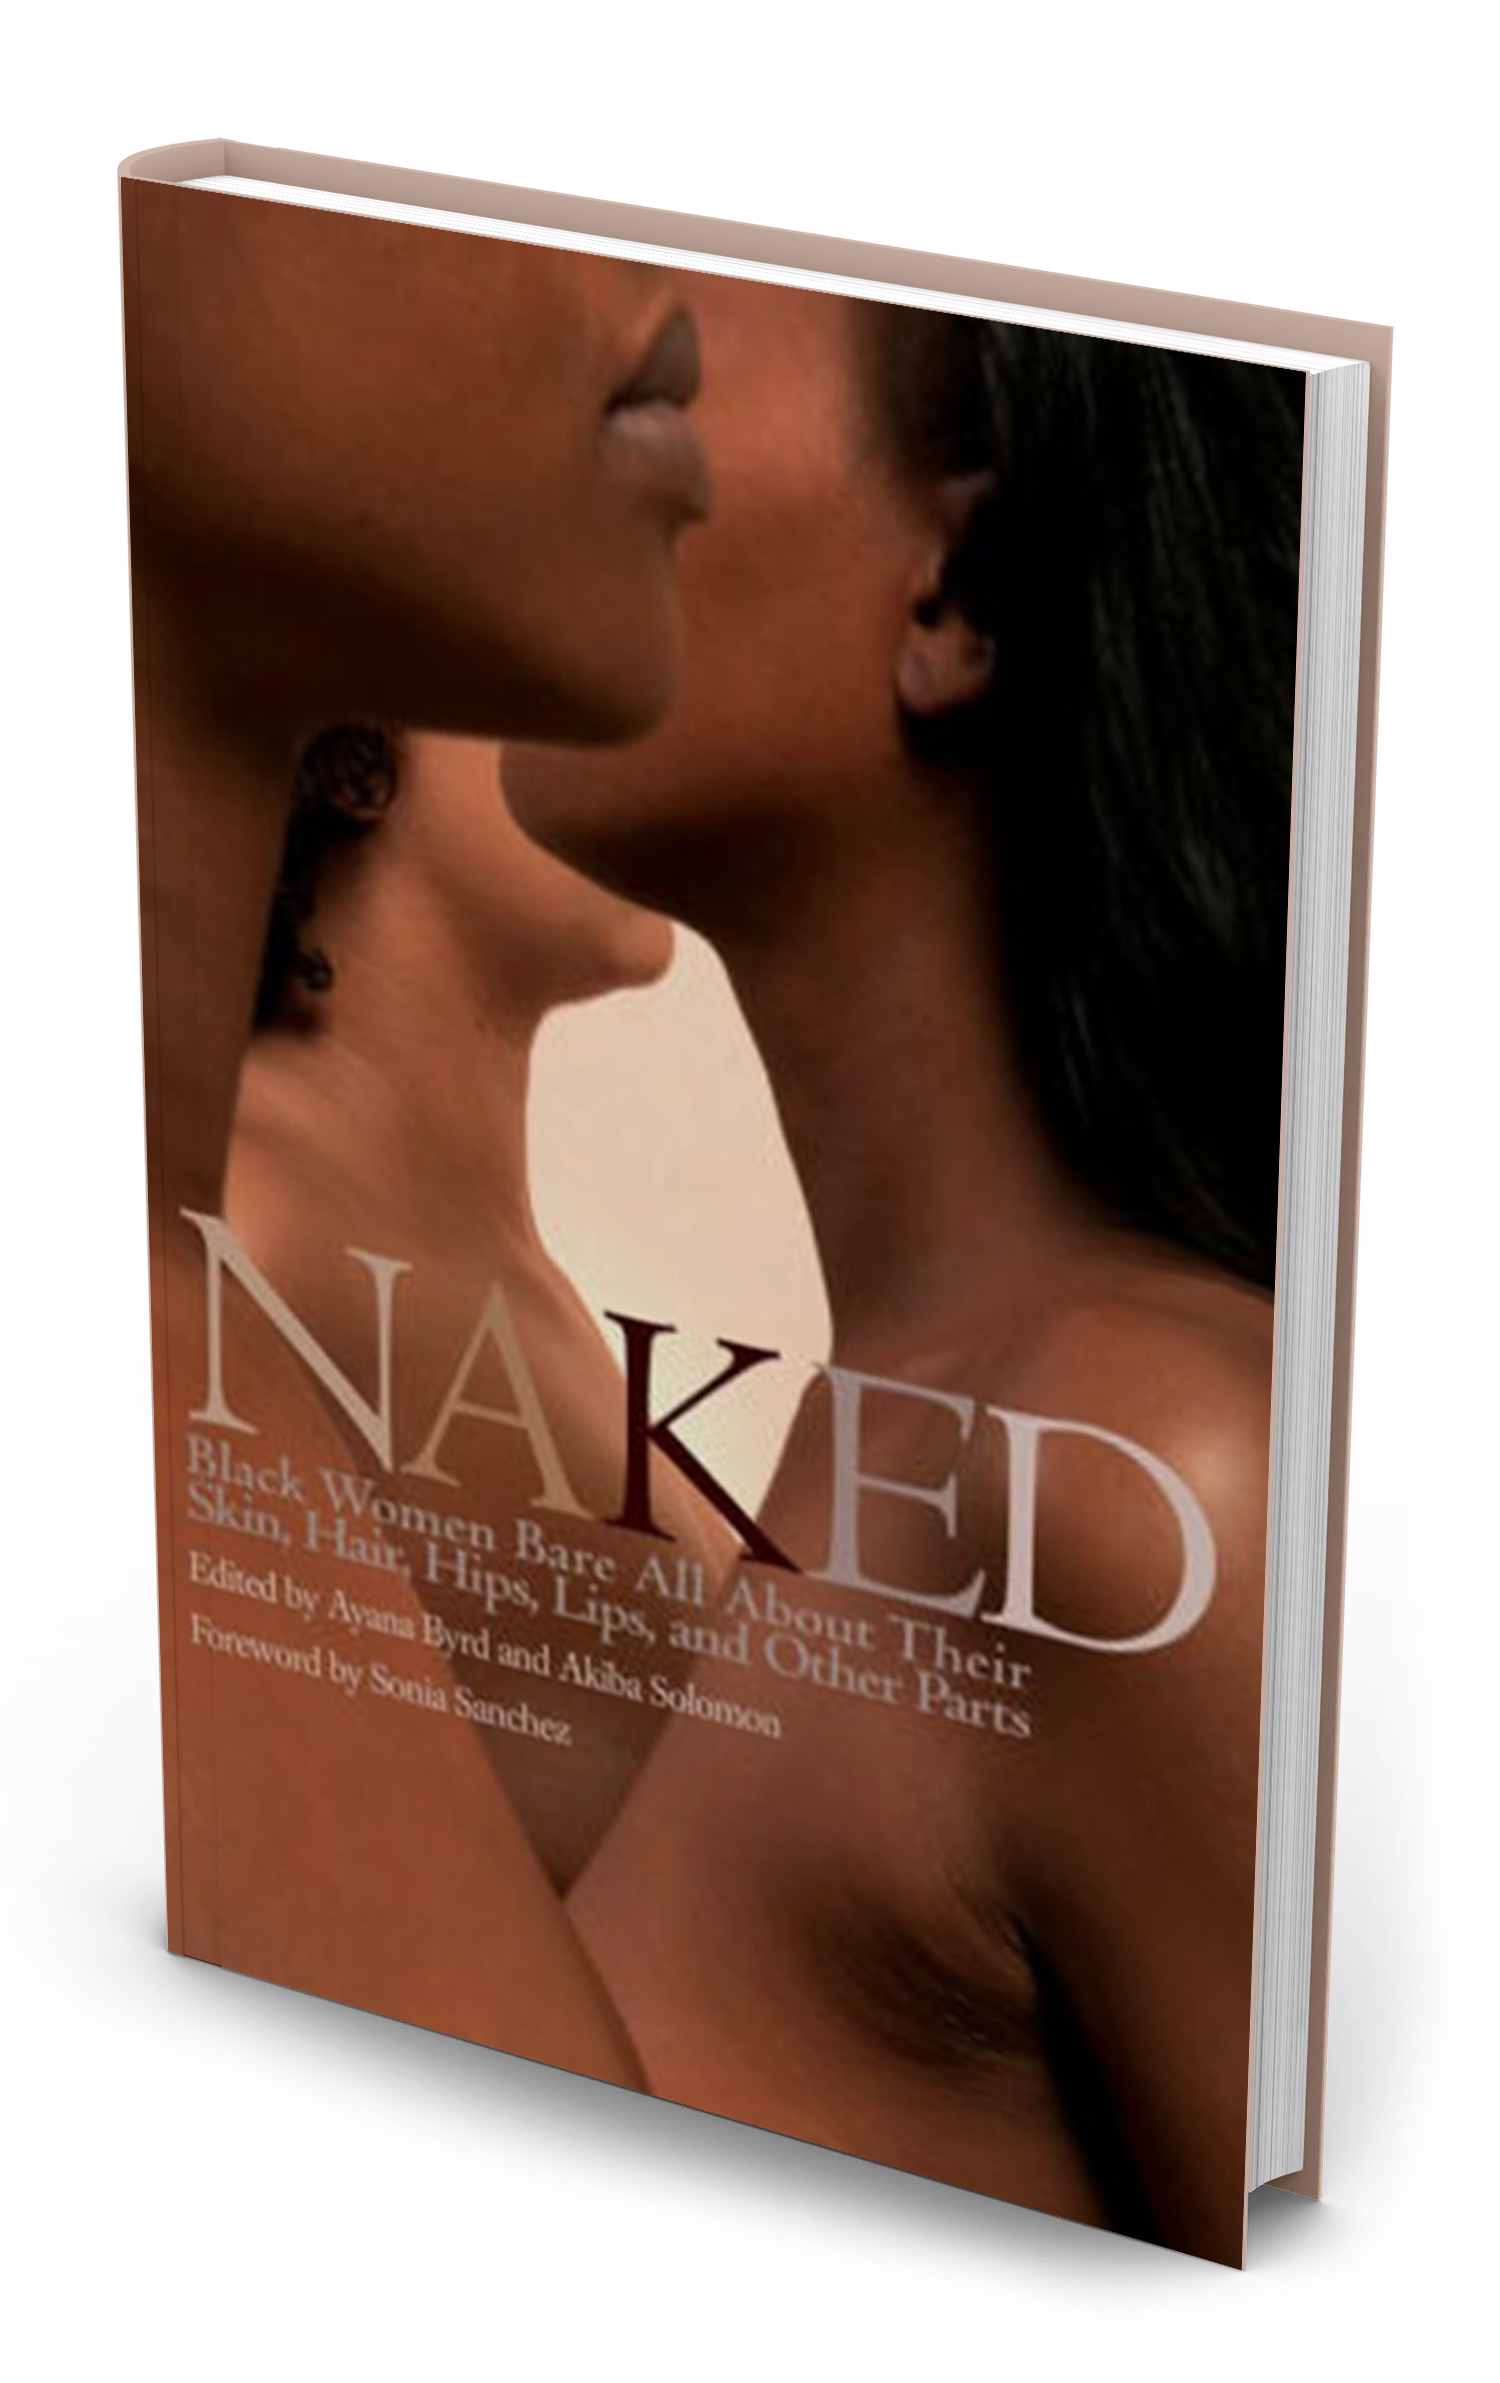 naked-cover1